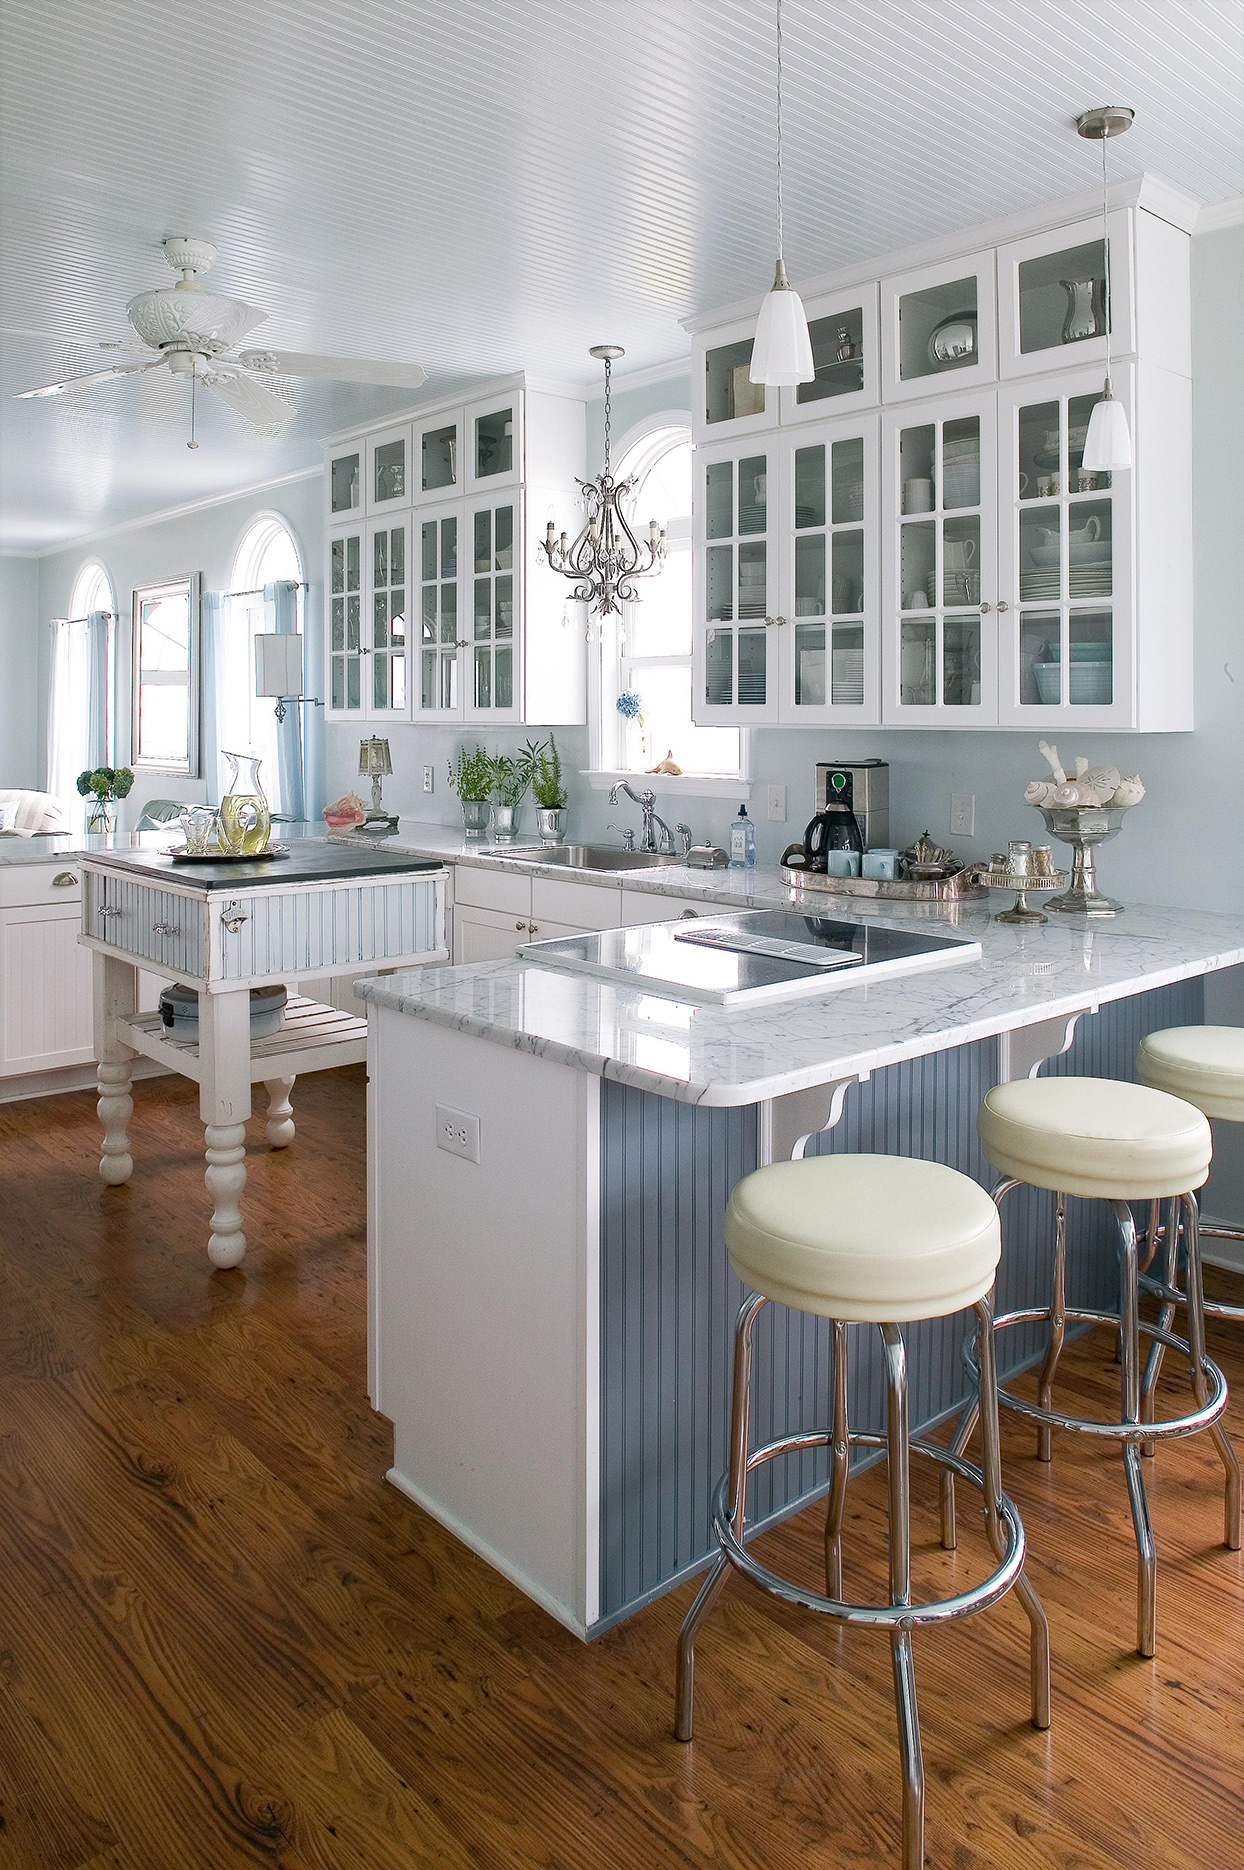 Kitchen cabinetry marble countertops